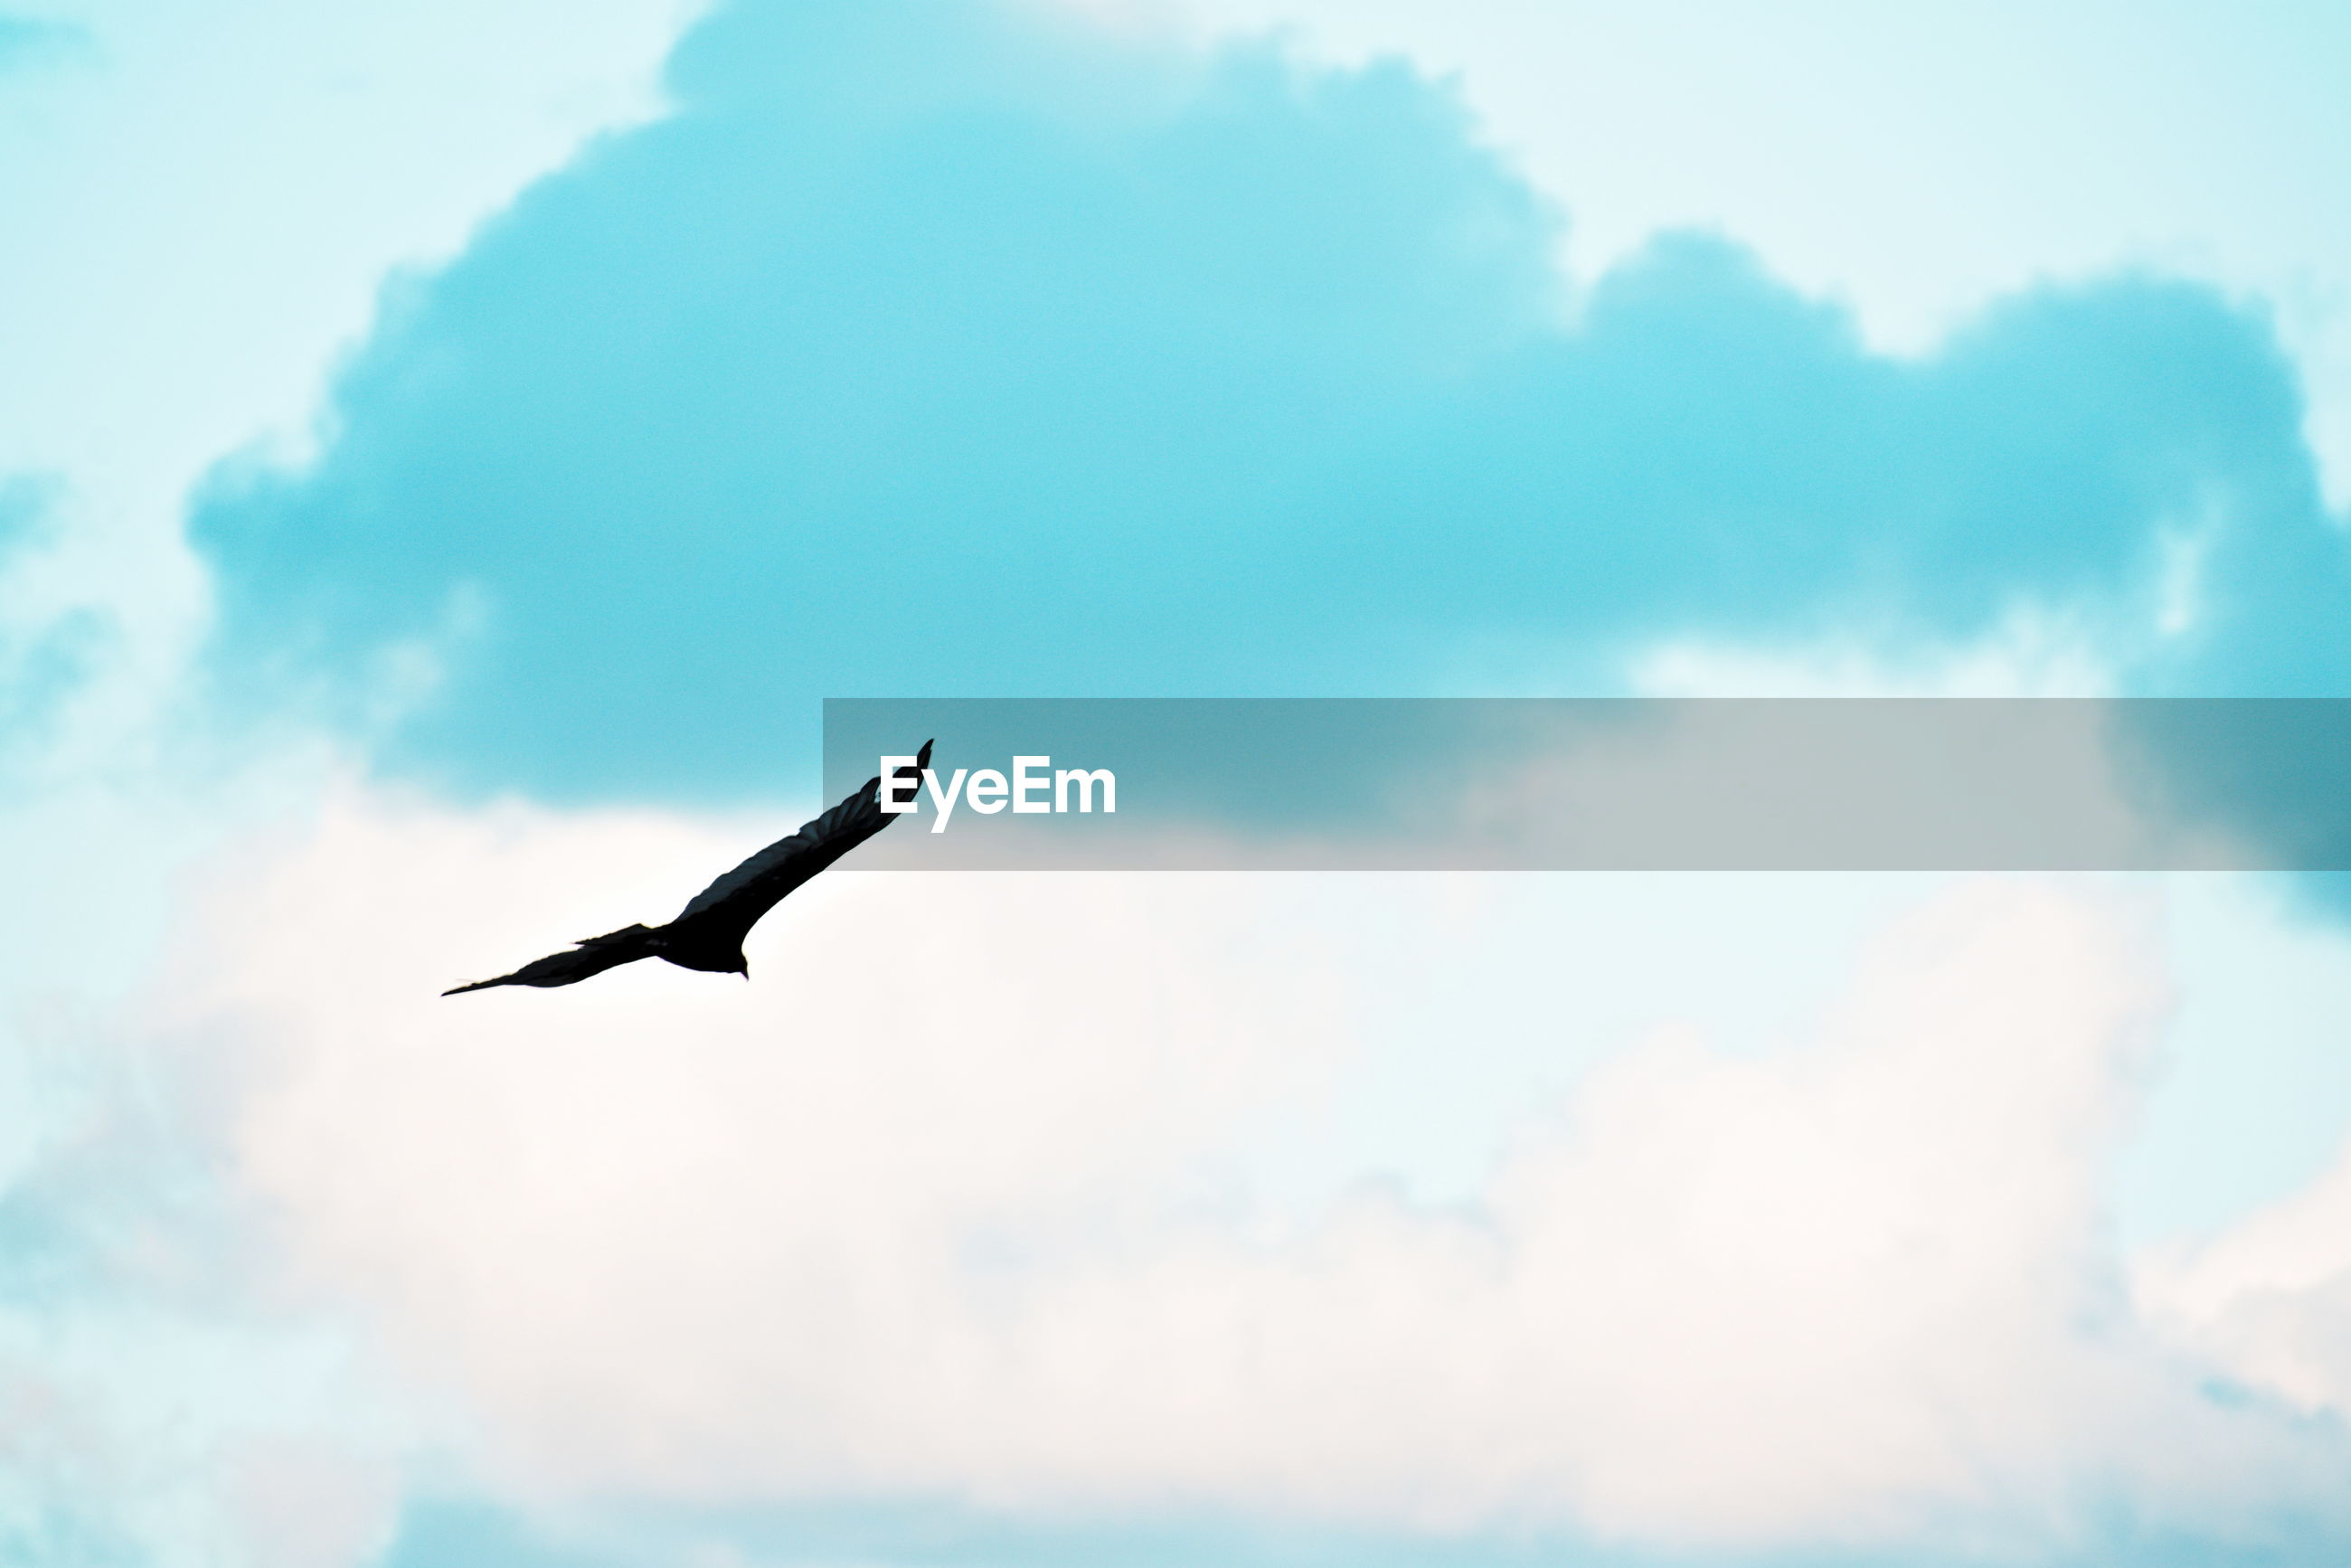 LOW ANGLE VIEW OF A BIRD FLYING